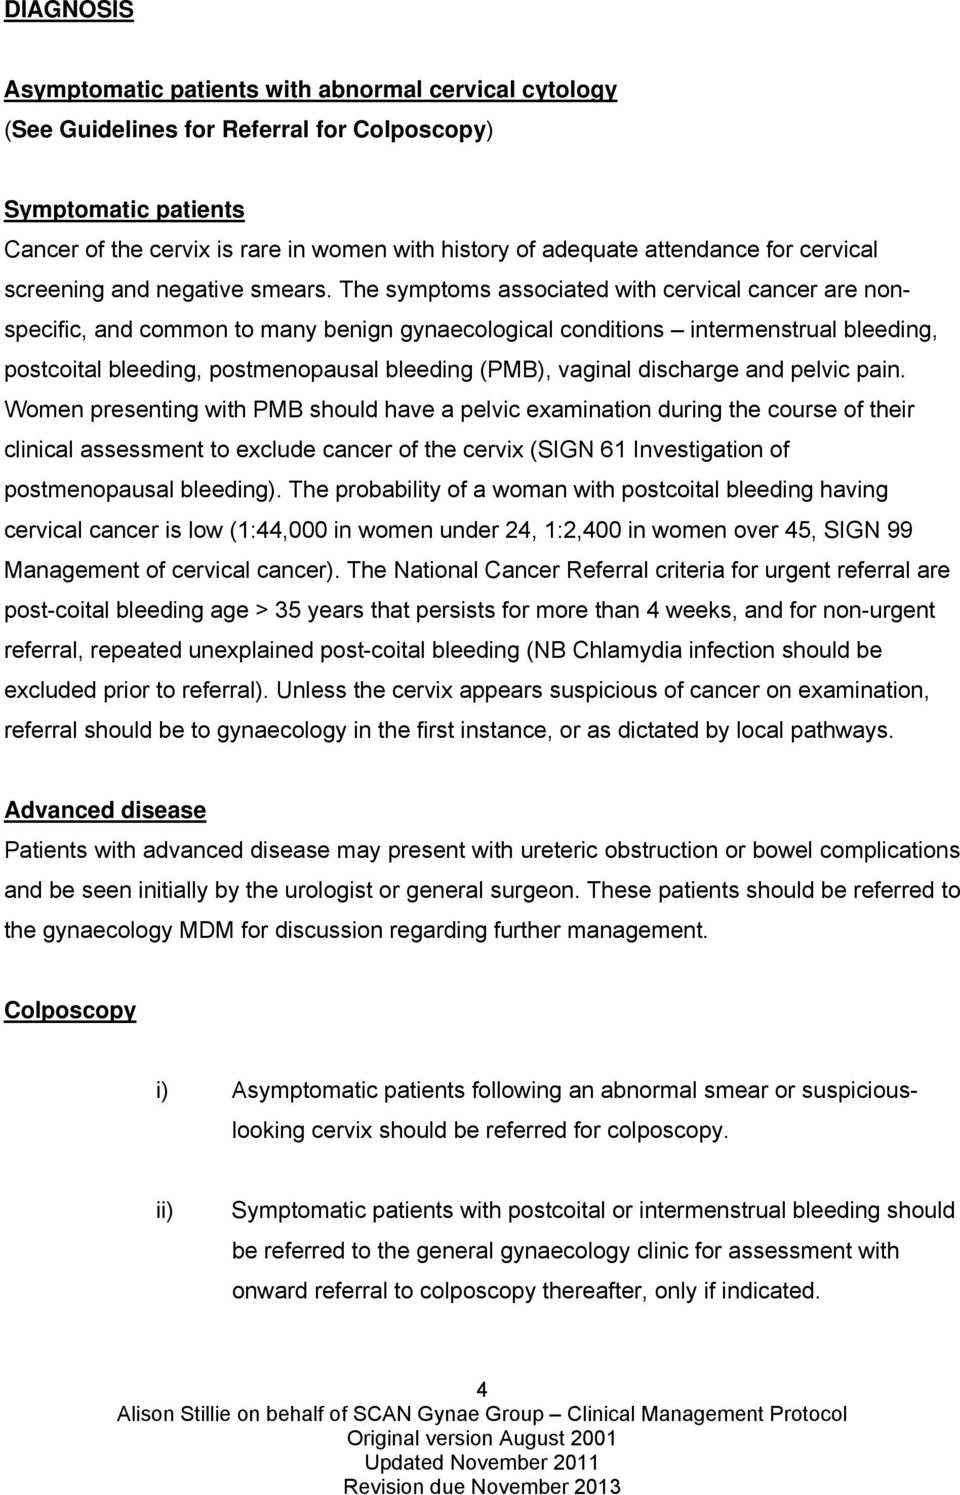 SCAN Gynaecological Group  Clinical Management Protocols